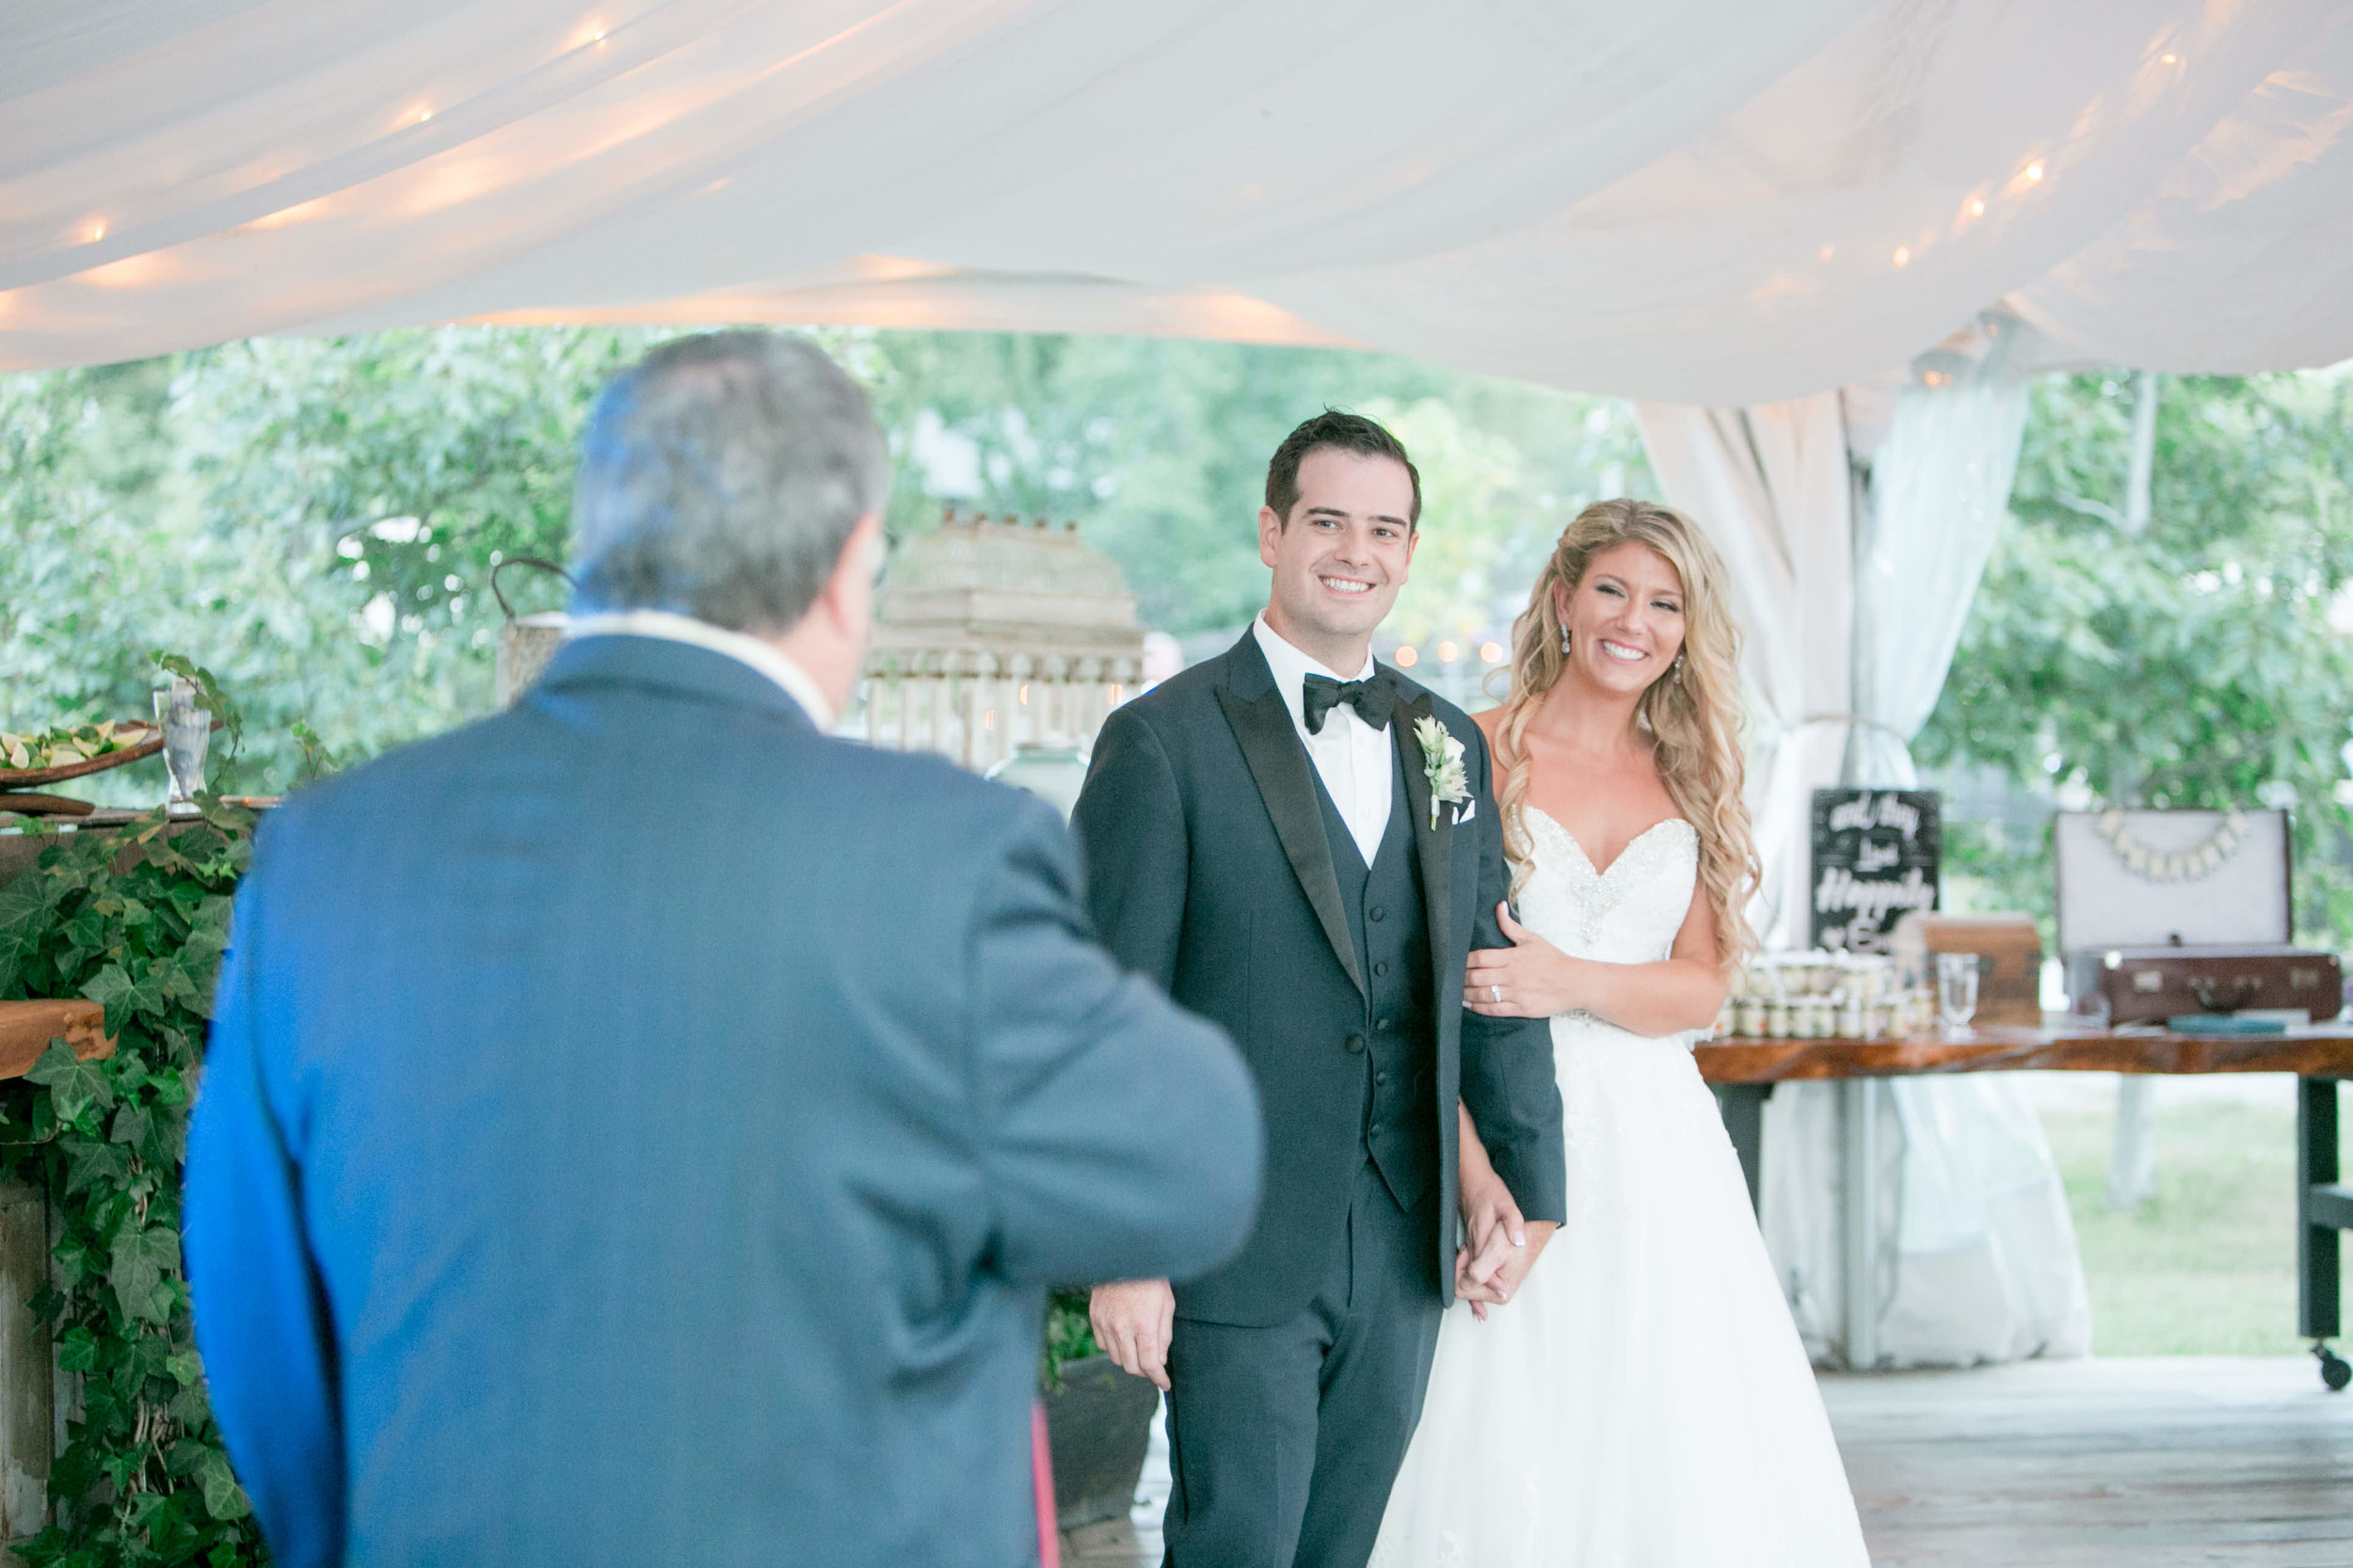 Ashley___Zac___Daniel_Ricci_Weddings___High_Res._Finals_542.jpg